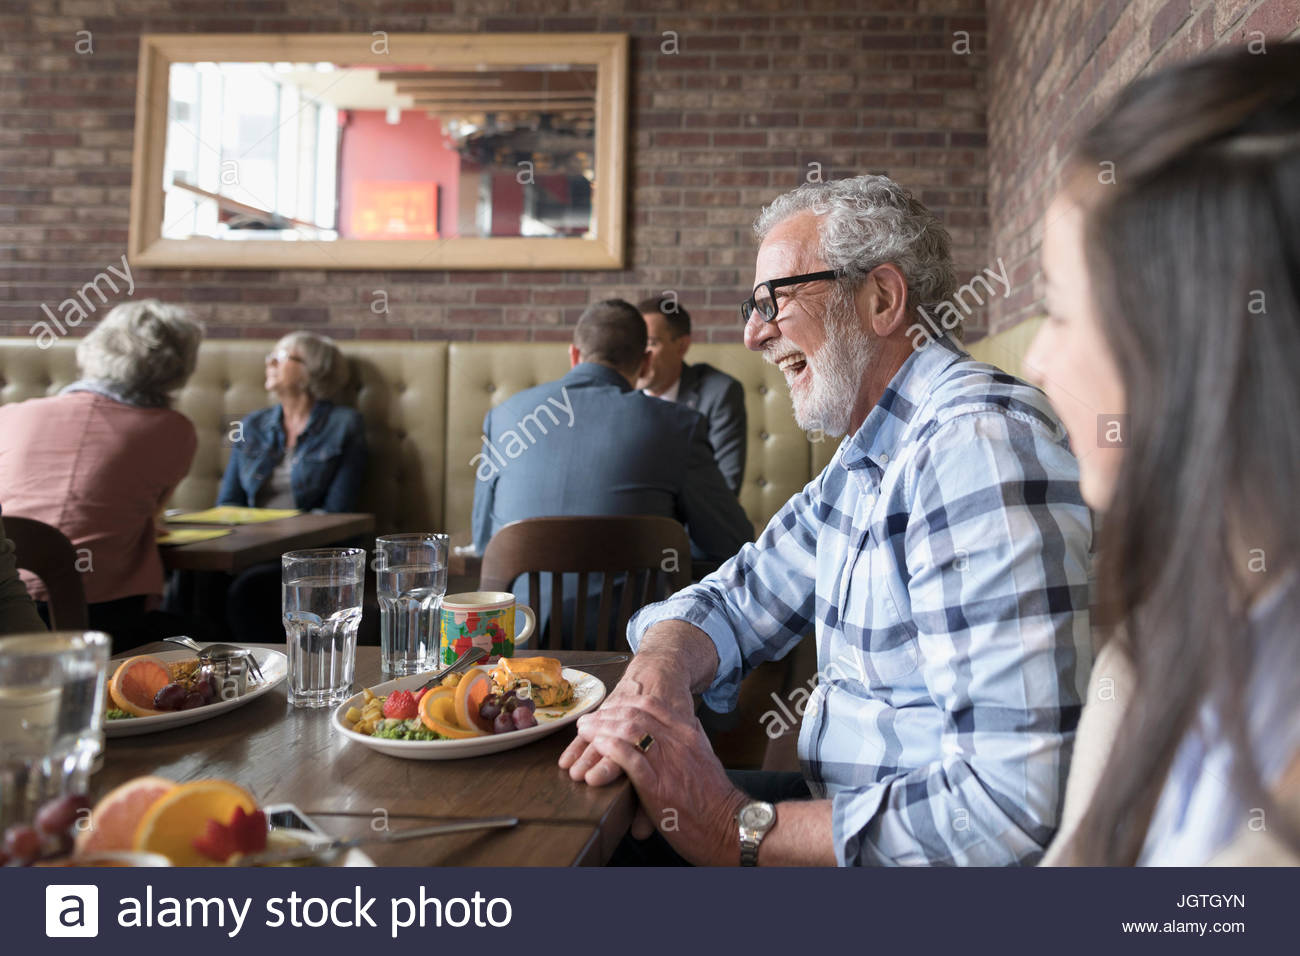 Senior man laughing and eating brunch at diner table - Stock Image